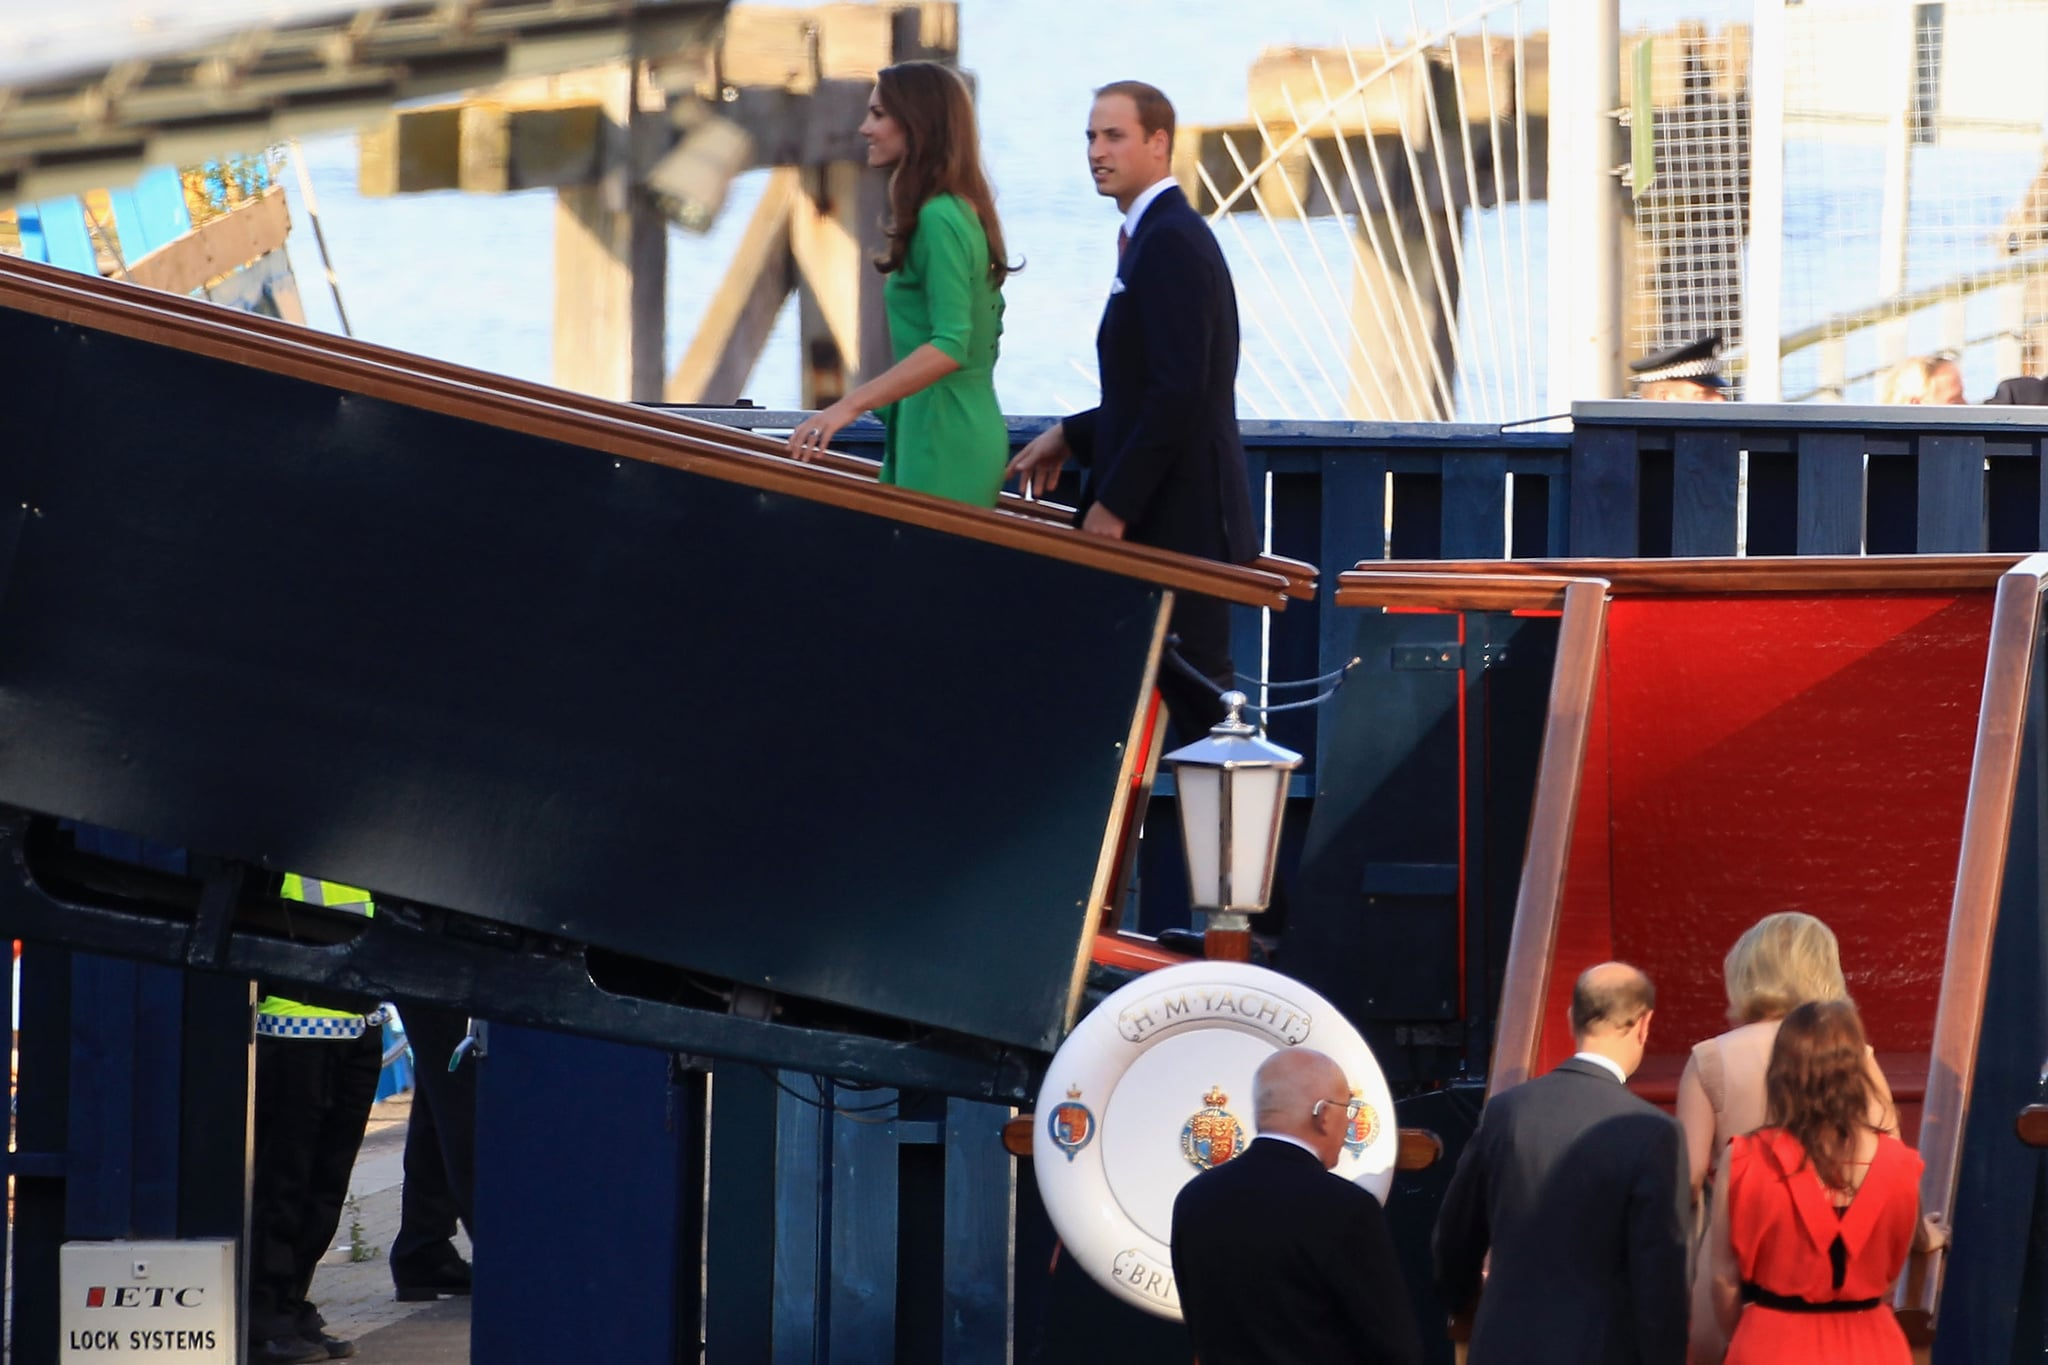 Kate Middleton and Prince William arrive on the Royal Yacht Britannia in Edinburgh.